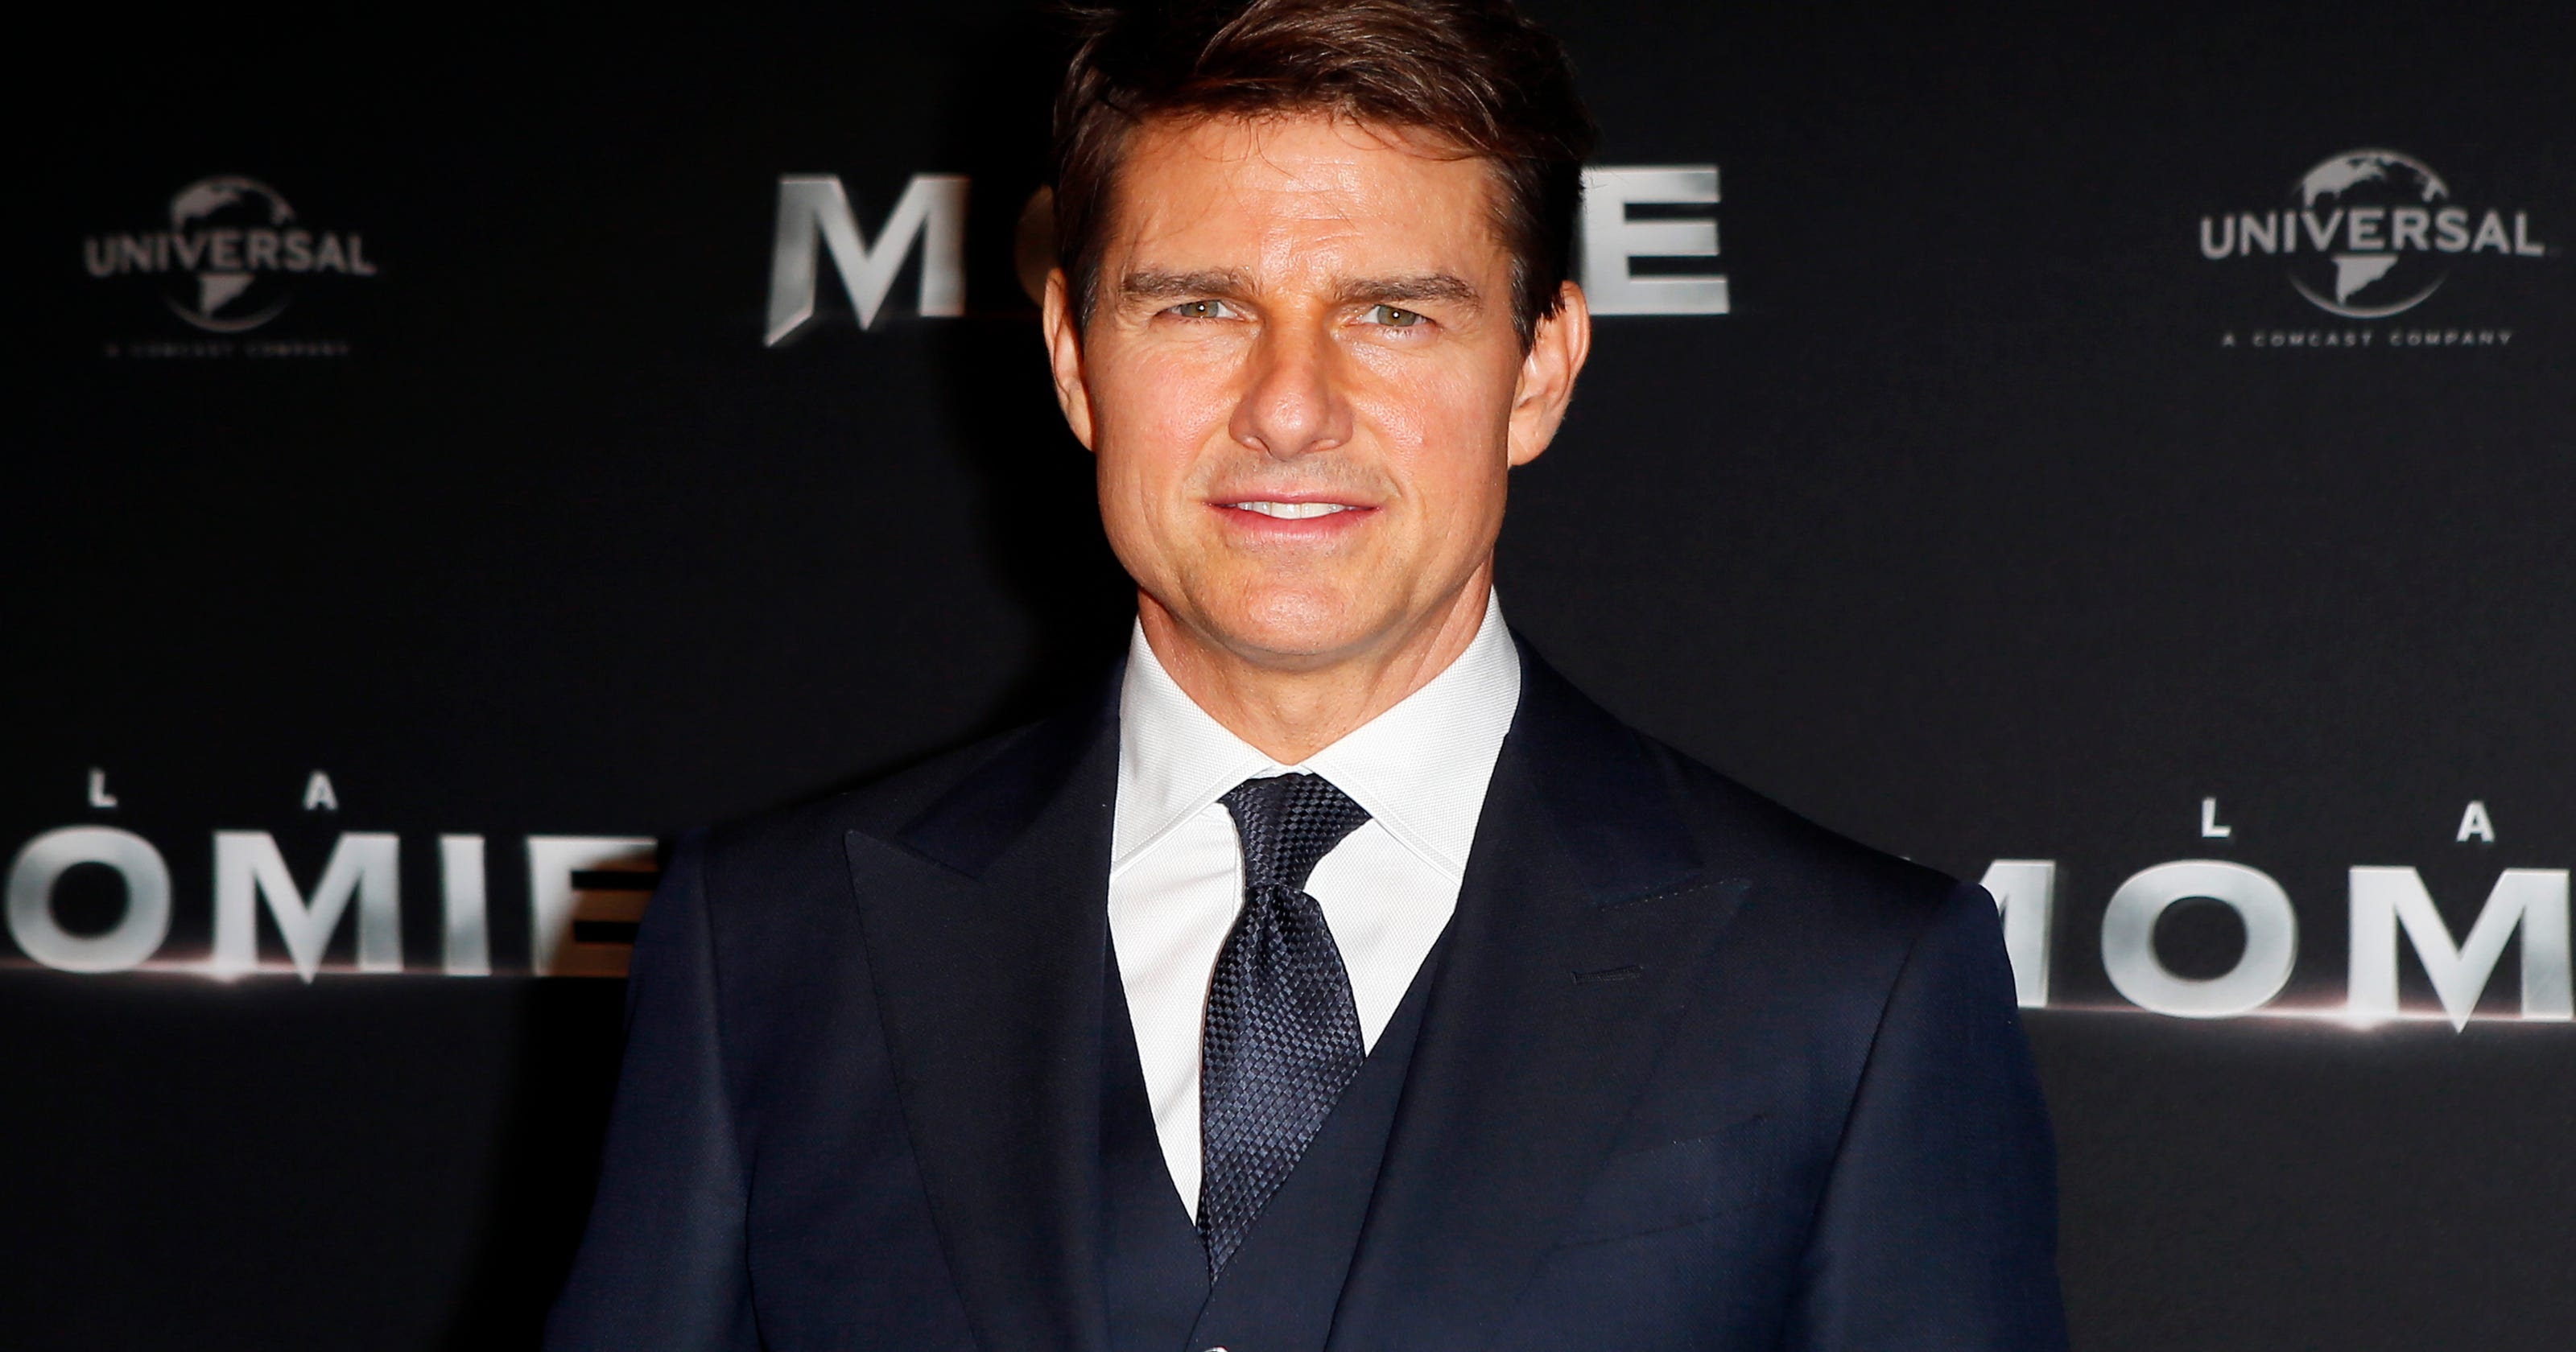 Tom Cruise stunt mishap leads to broken ankle, 'M:I 6' film delay